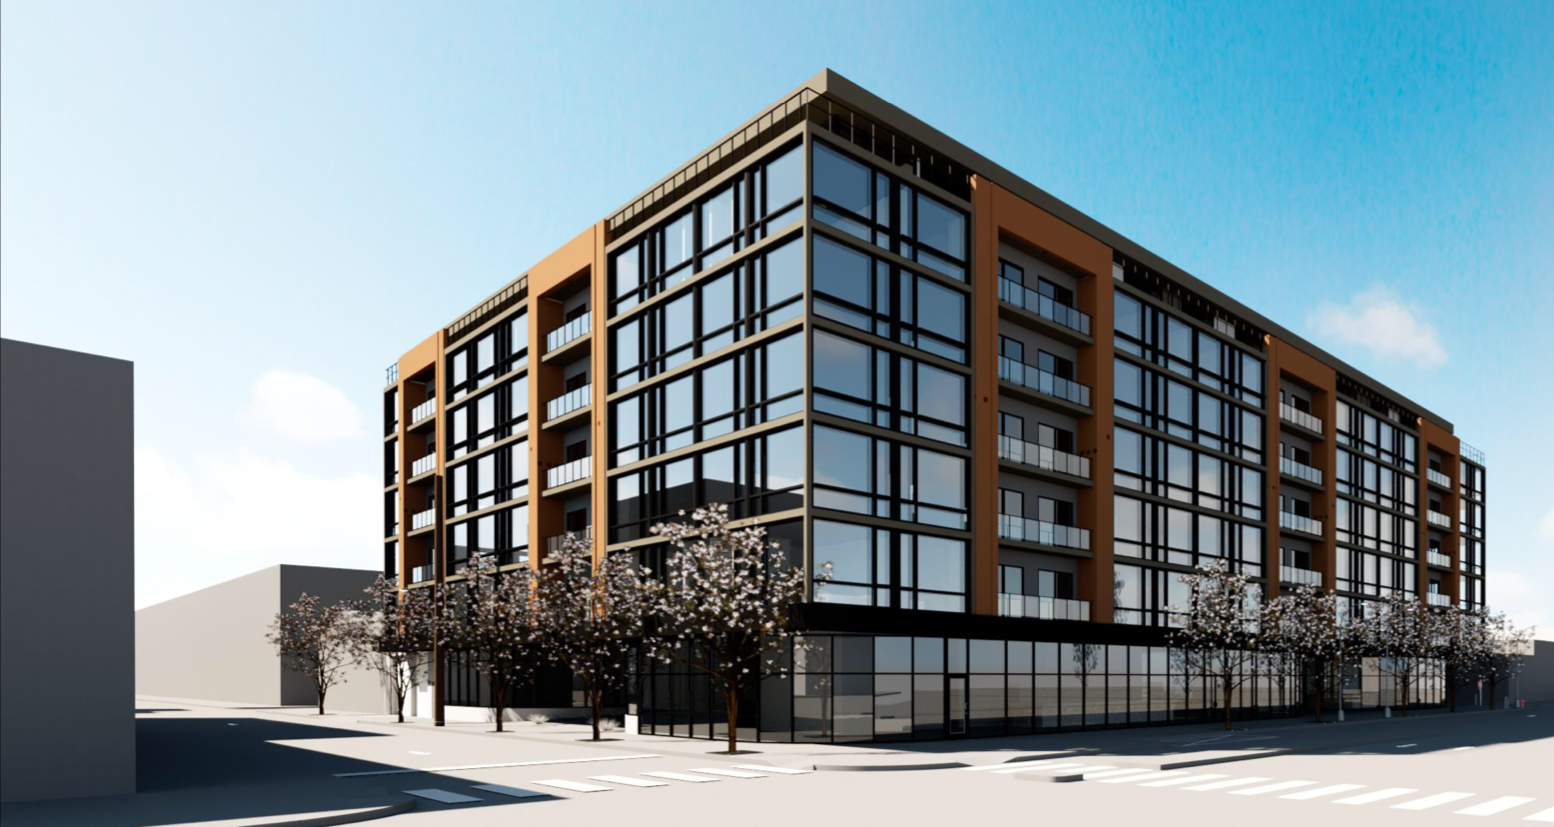 Rendering of 310 West Girard Avenue. Credit: T + Associates Architects.